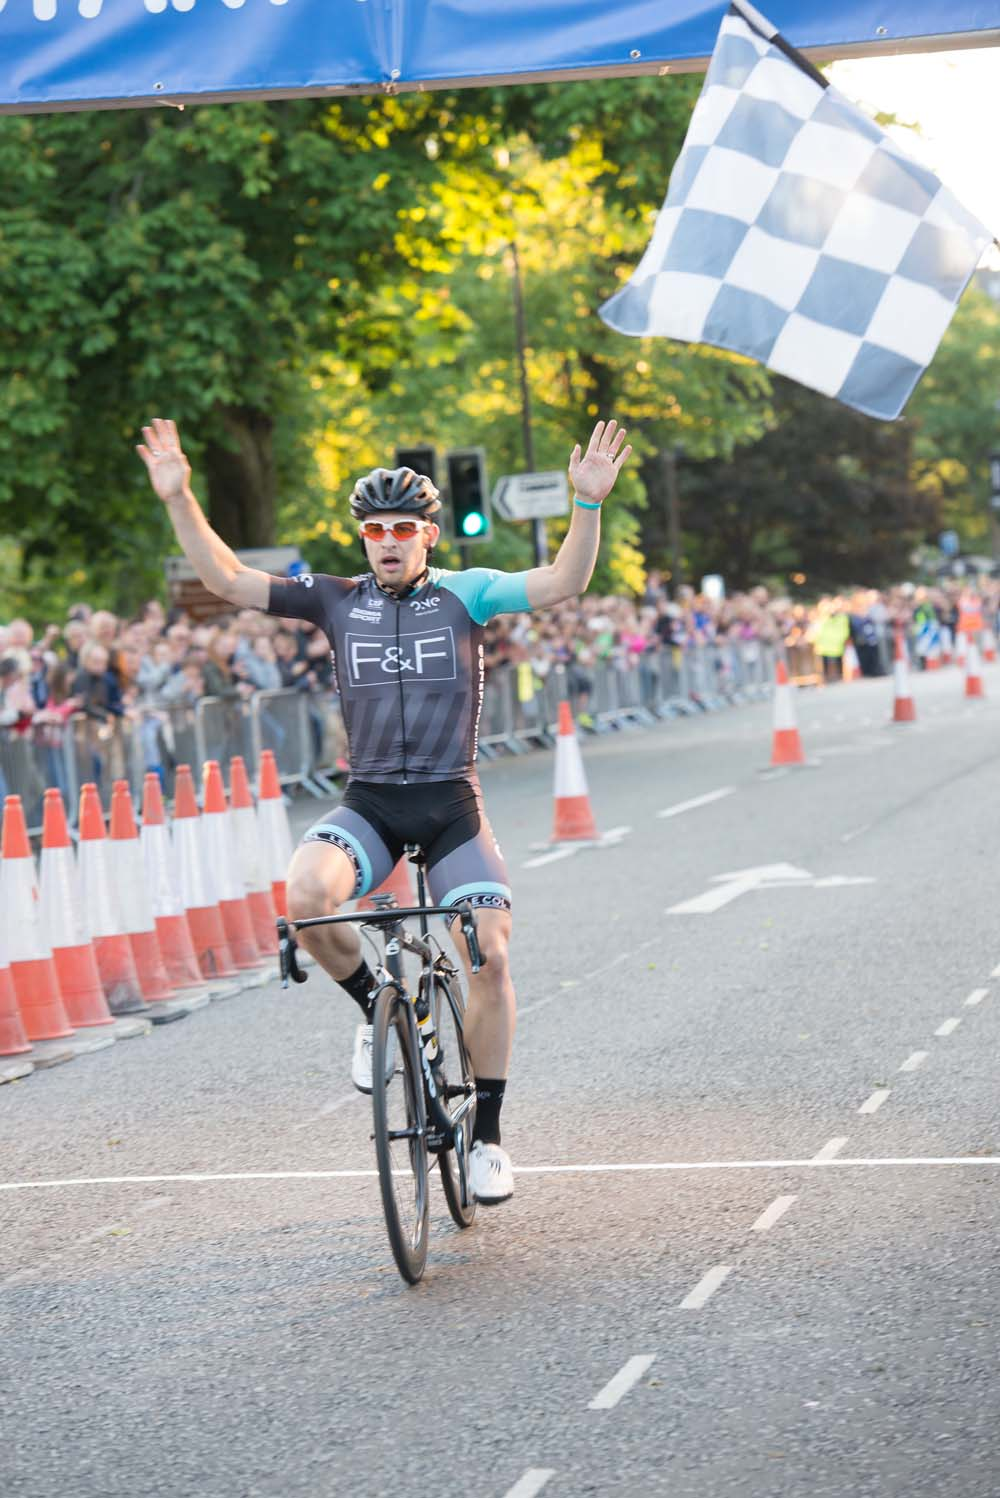 Chris Opie from One Pro Cycling clinched victory in the Elite Race